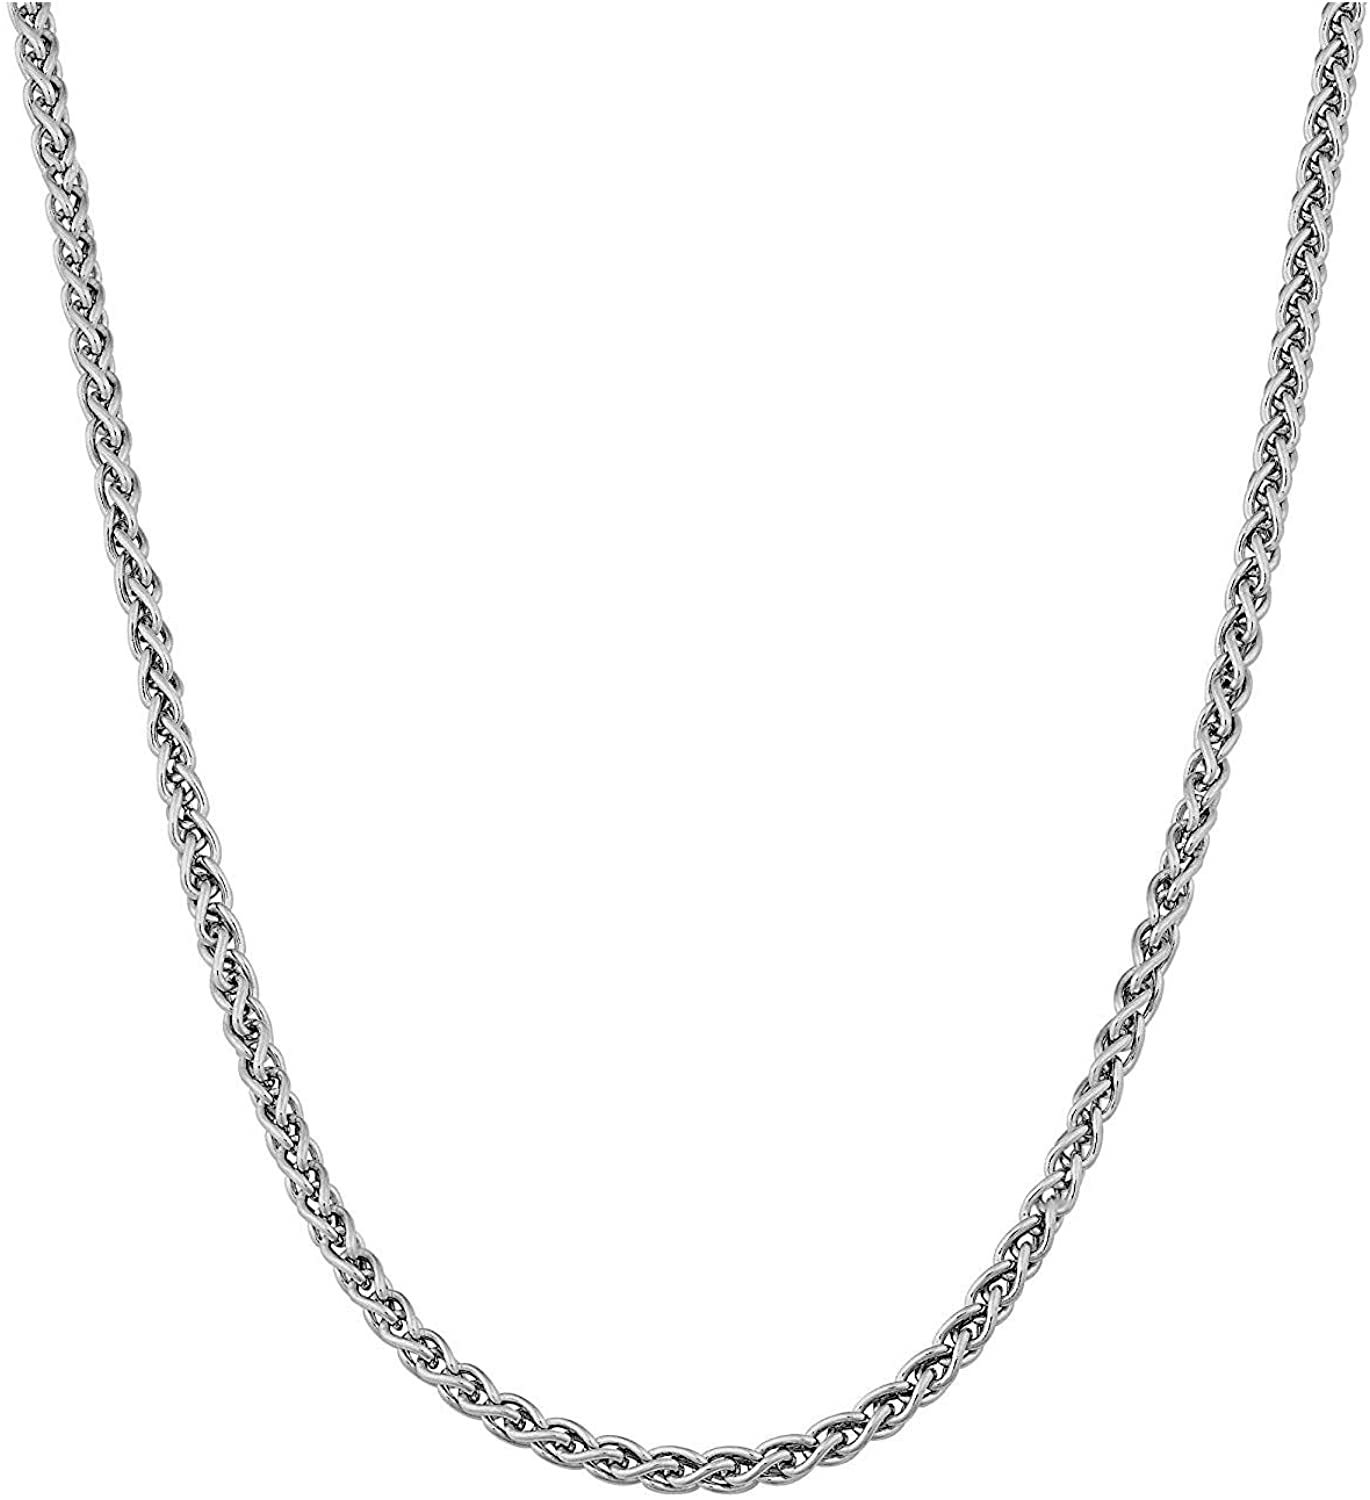 AmyRT Stainless Steel Chain Necklace Silver for Men Women 16